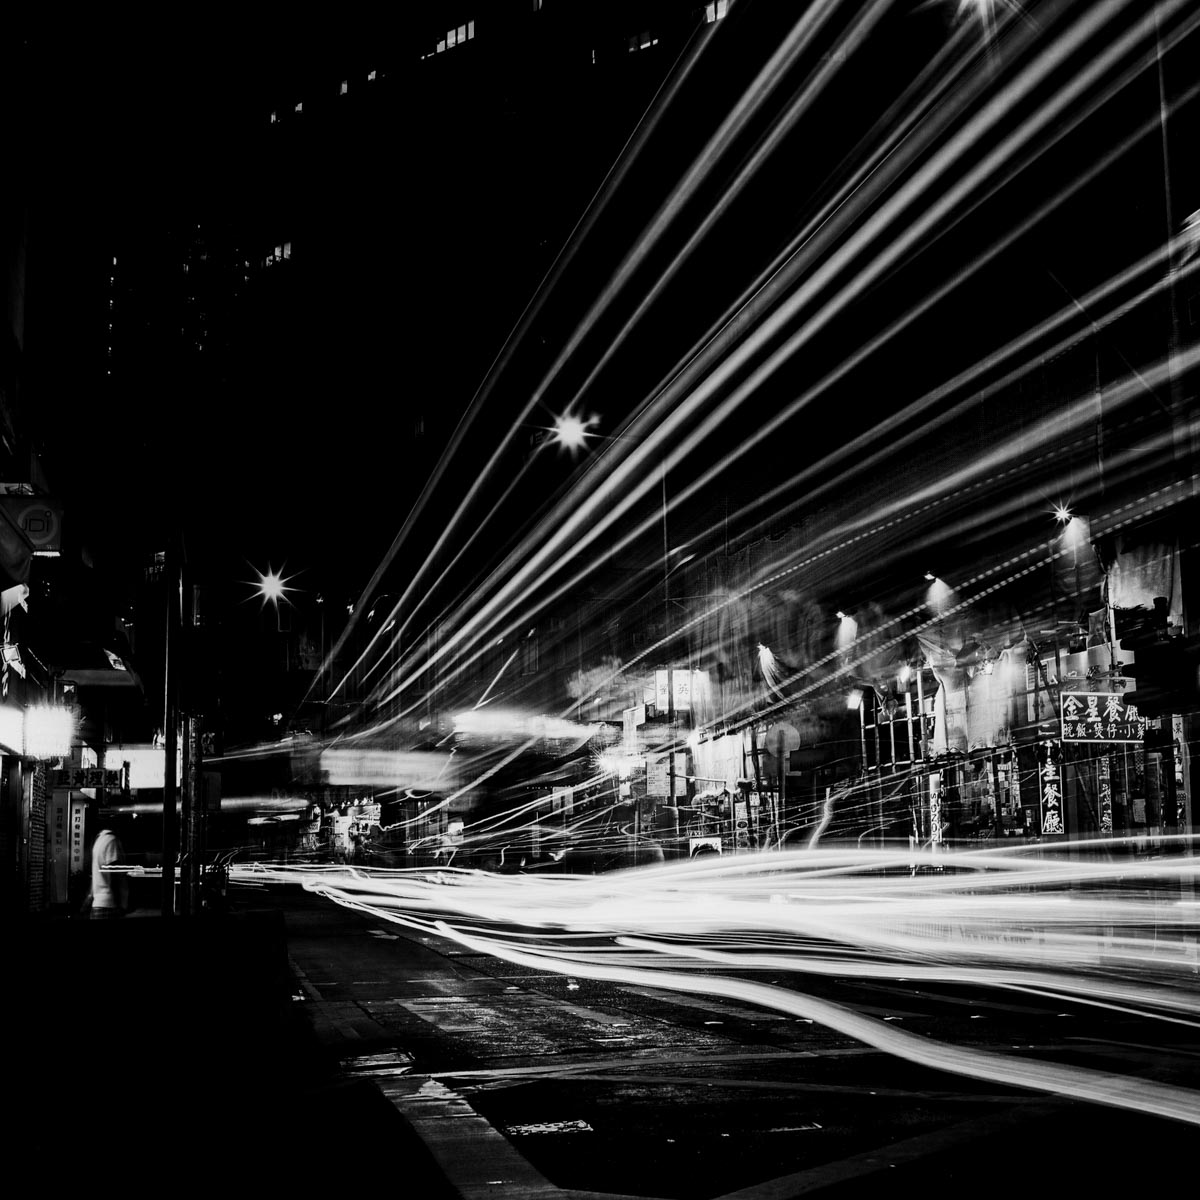 Light traffic - Shot on Rollei Ortho 25 (120 format)